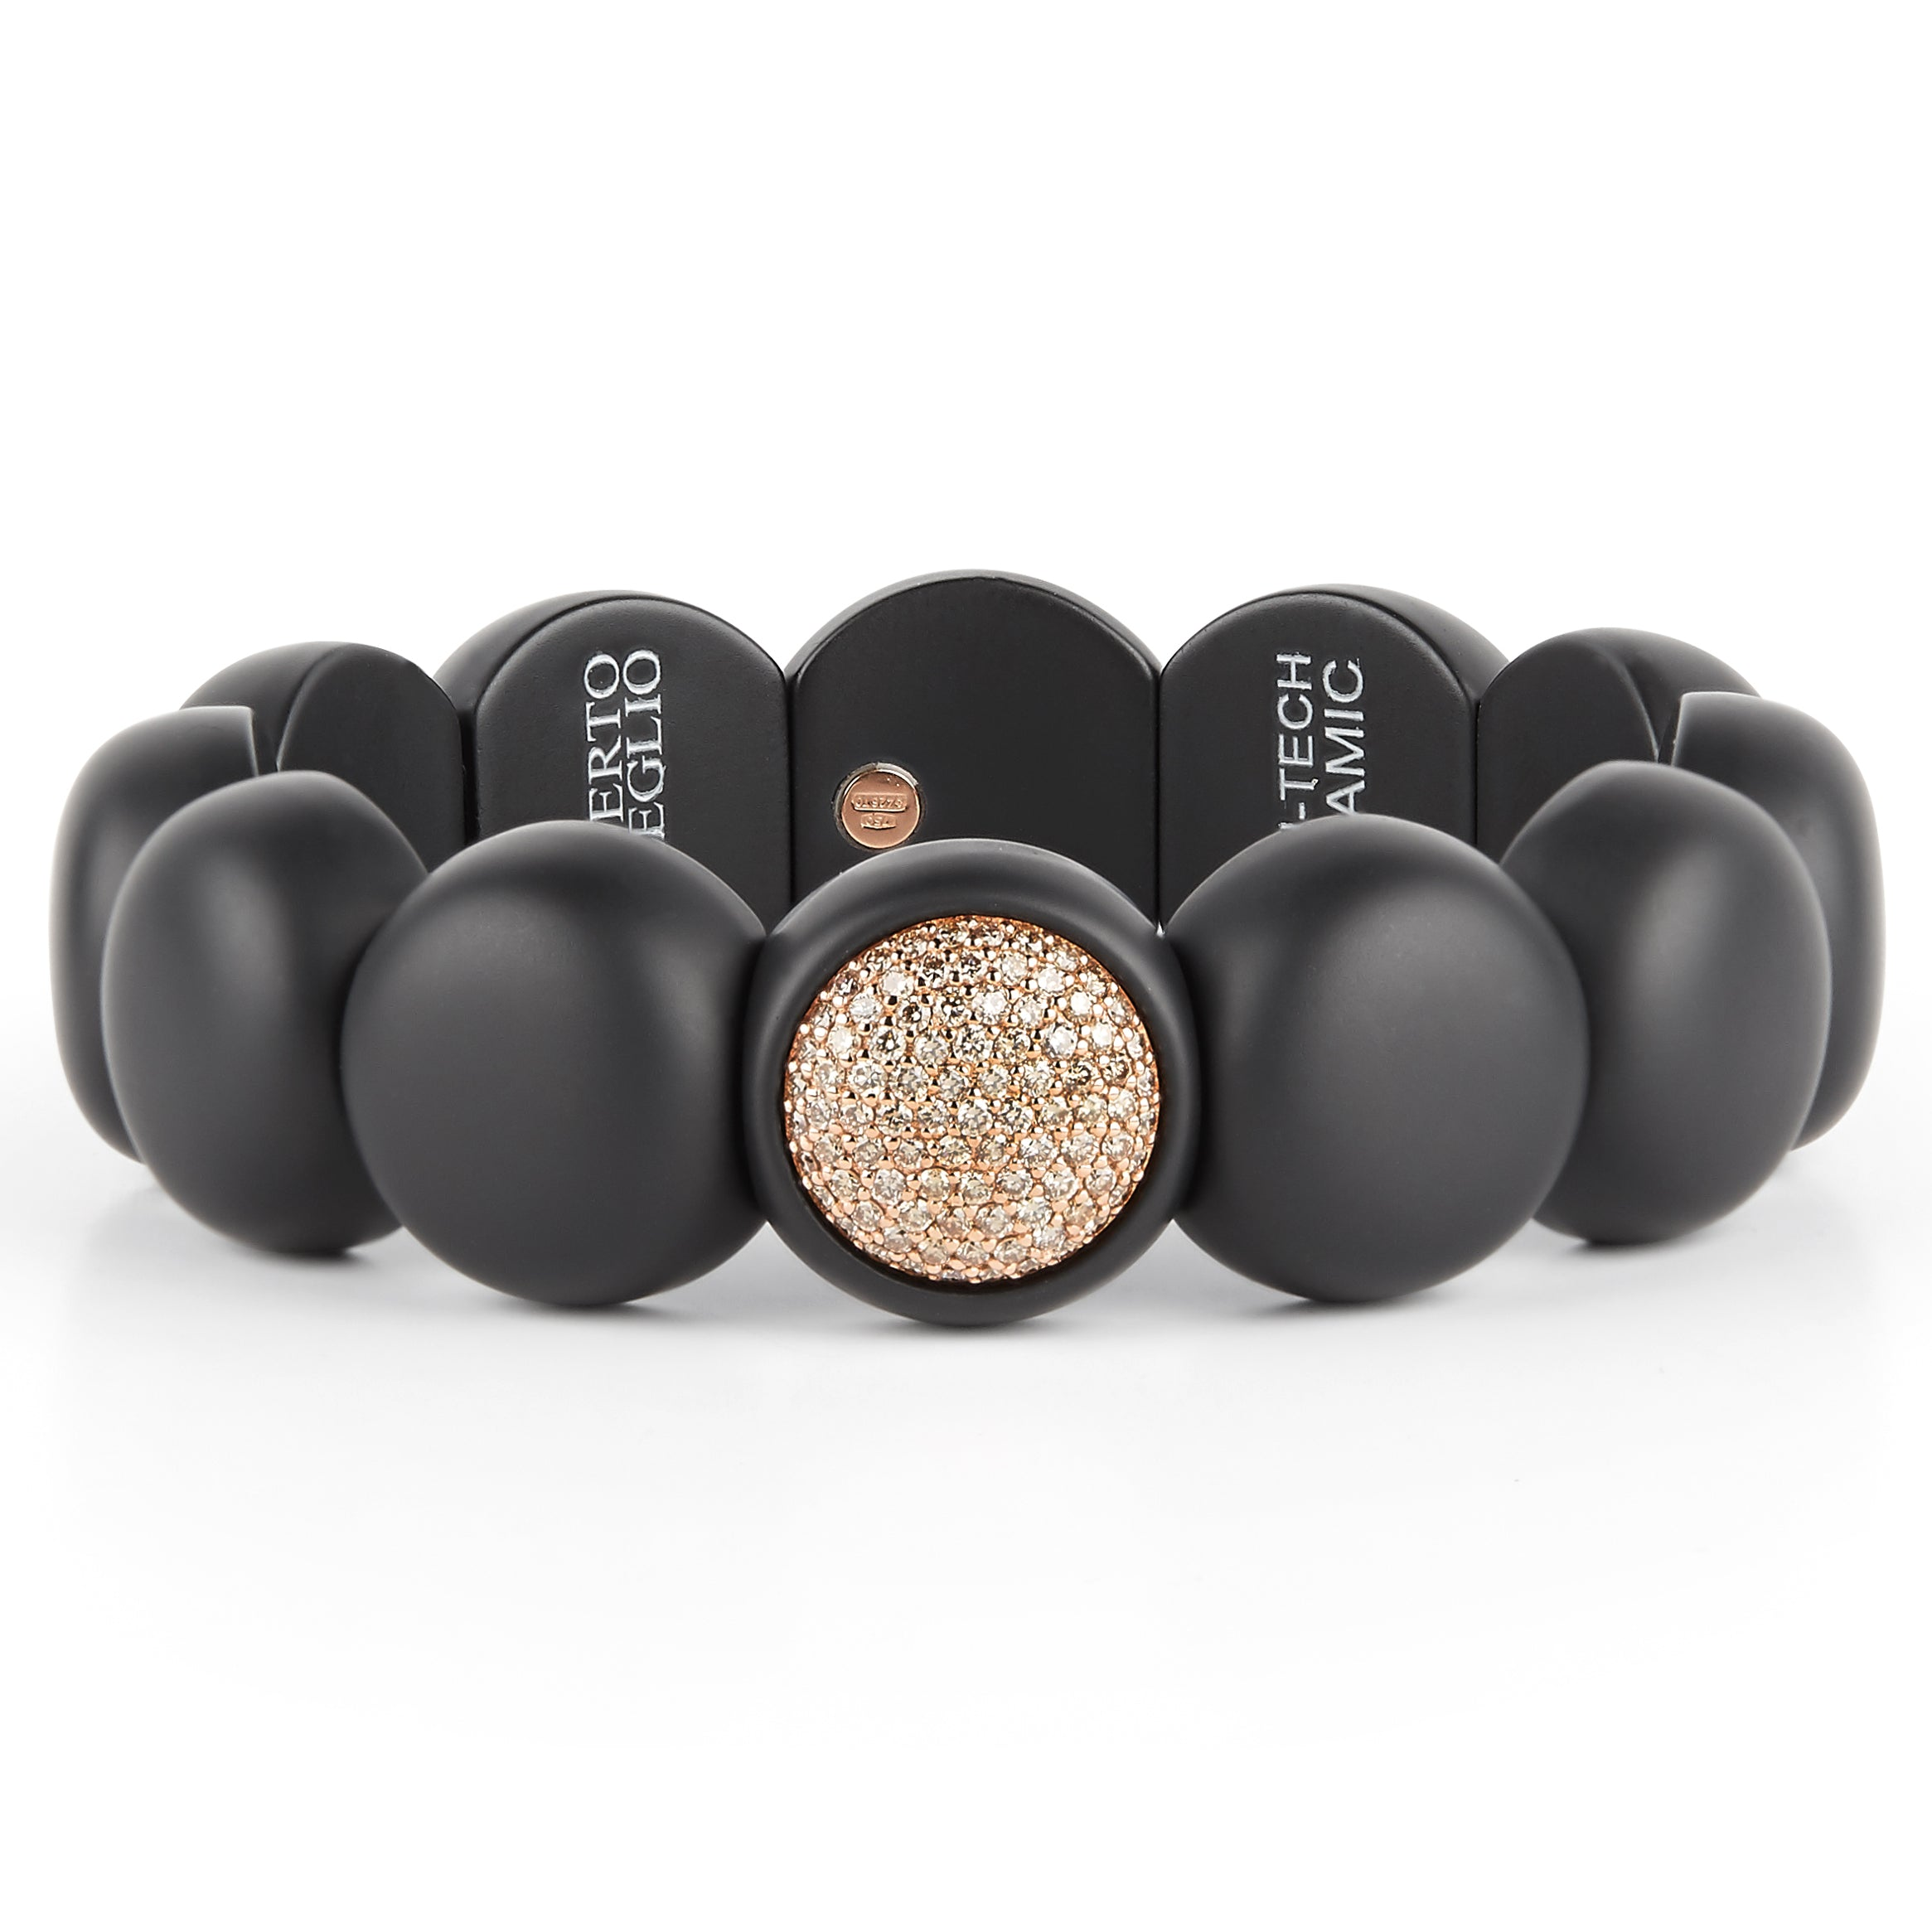 Roberto Demeglio Dama Elastic Stretch Large Bracelet in Black Matte Ceramic with 18K Rose Gold Champagne Diamonds .88 carats